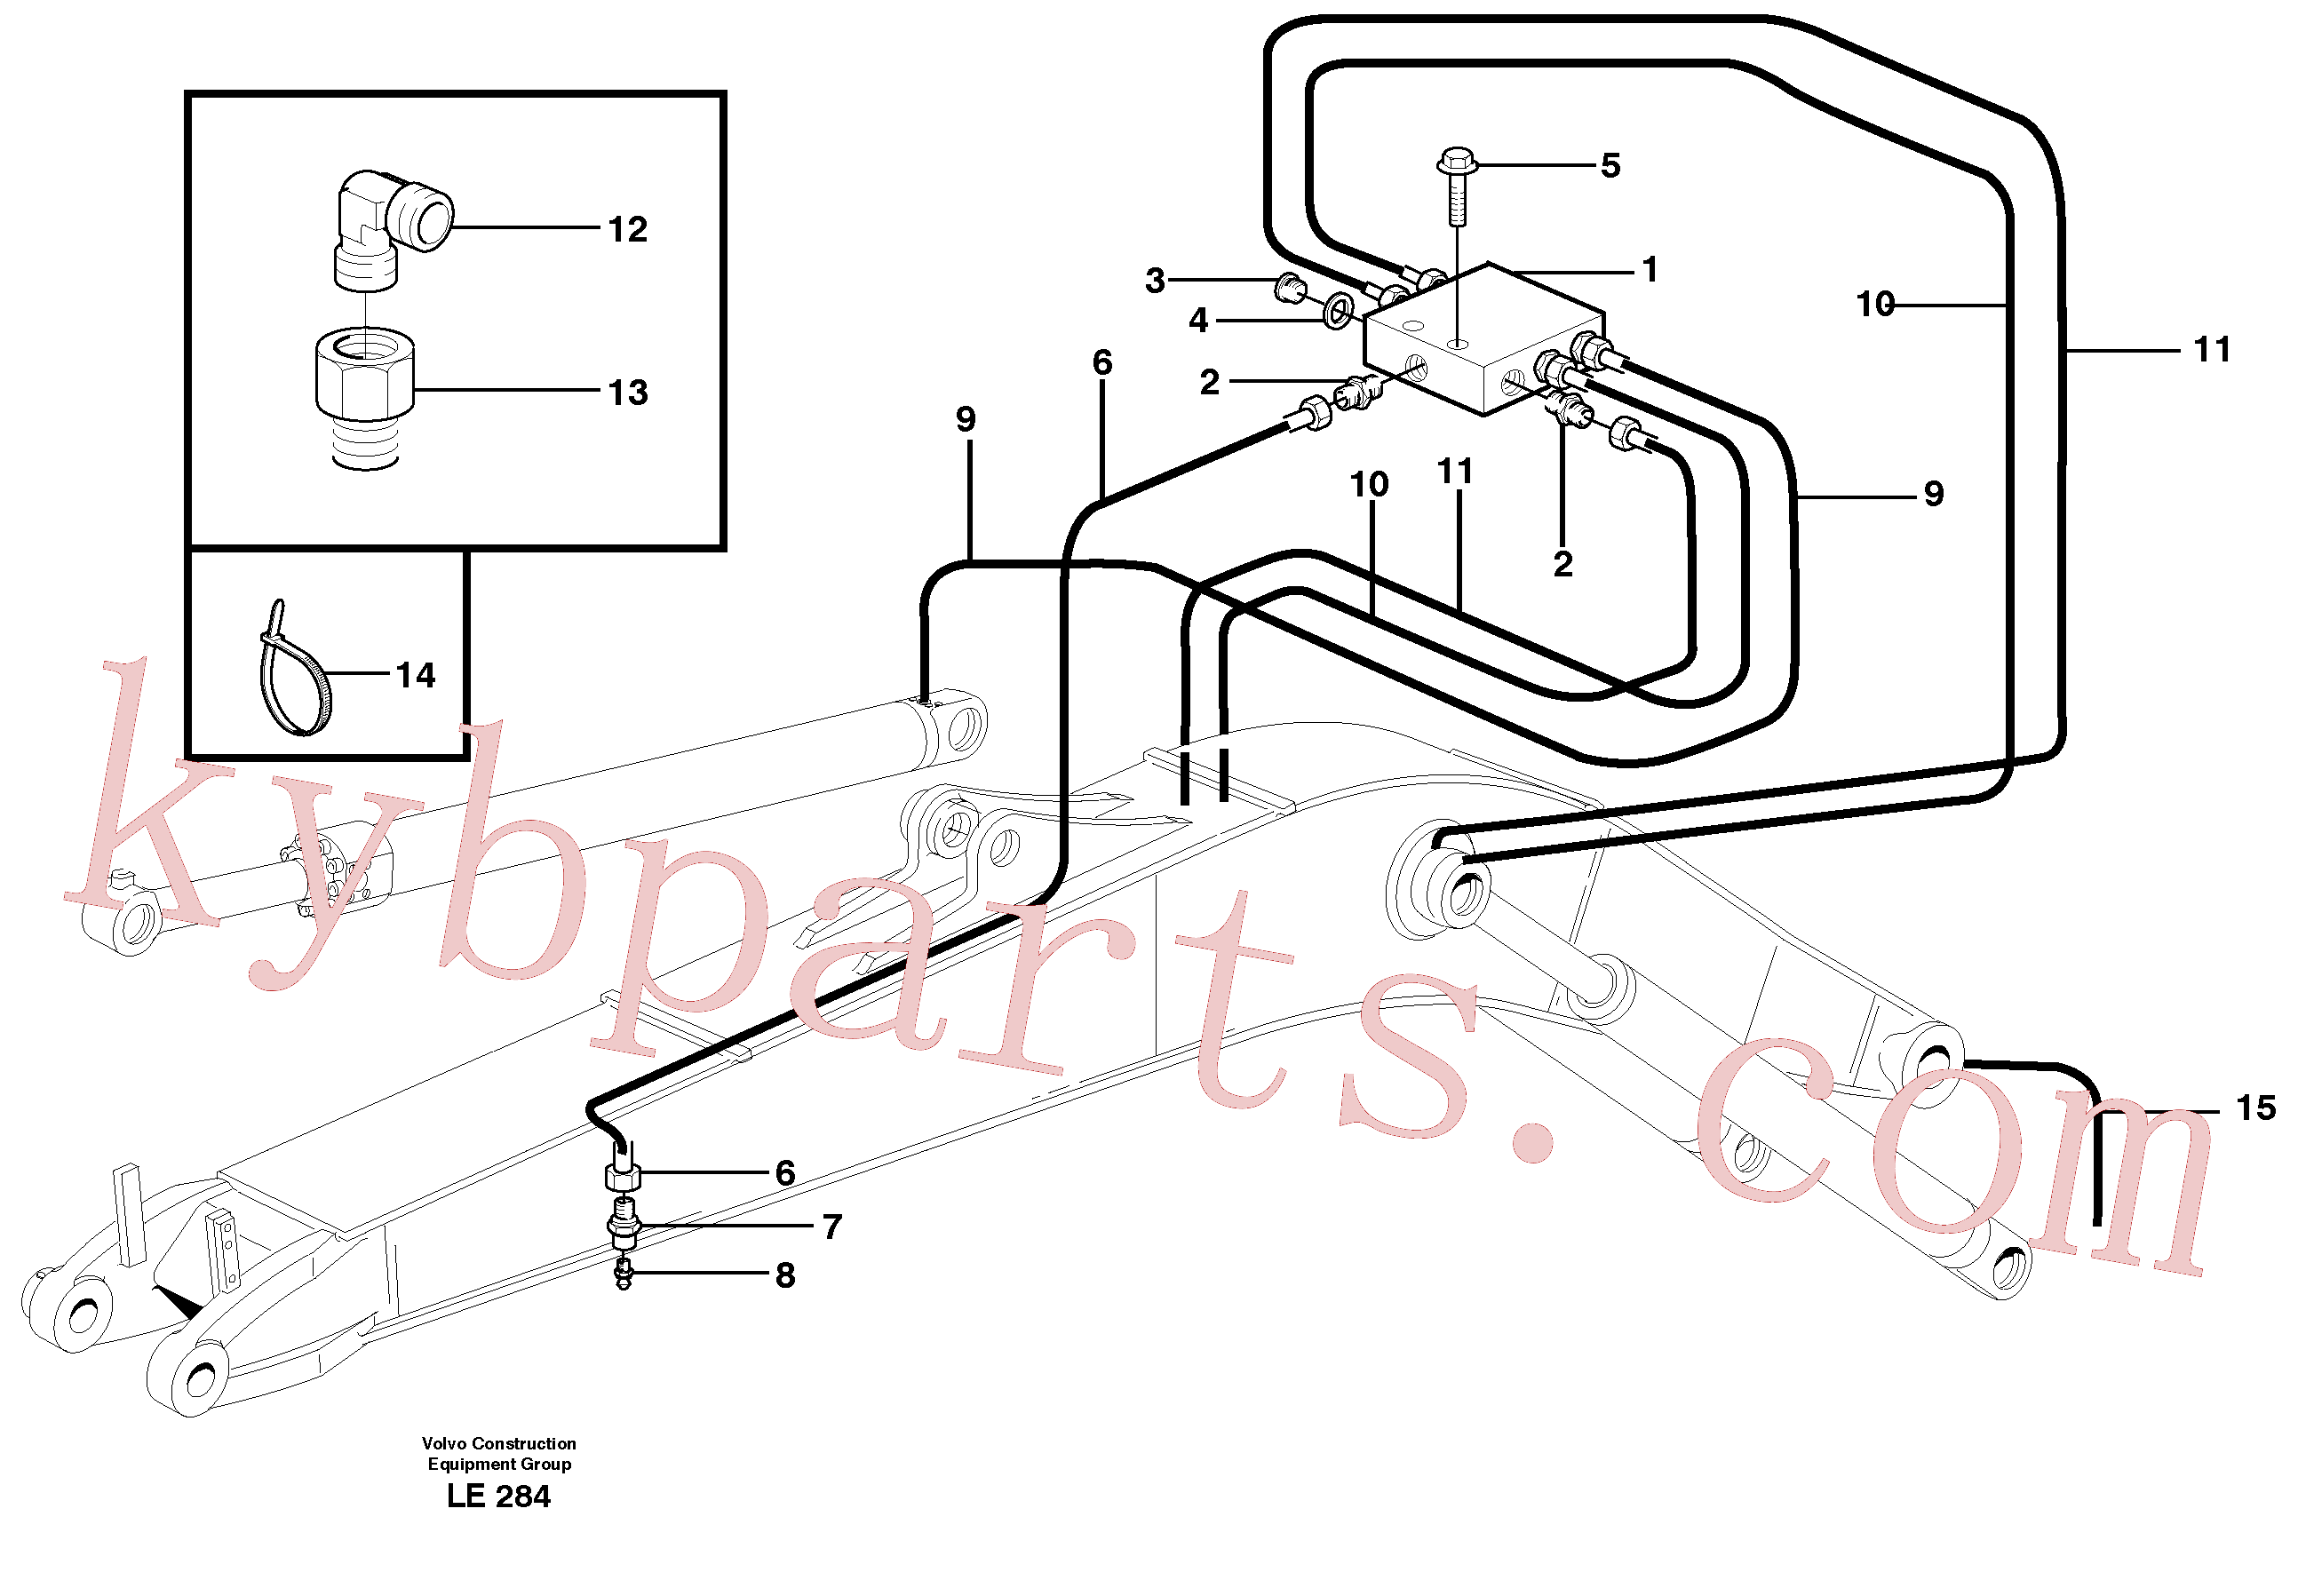 VOE14370347 for Volvo Central lubrication, mono boom(LE284 assembly)